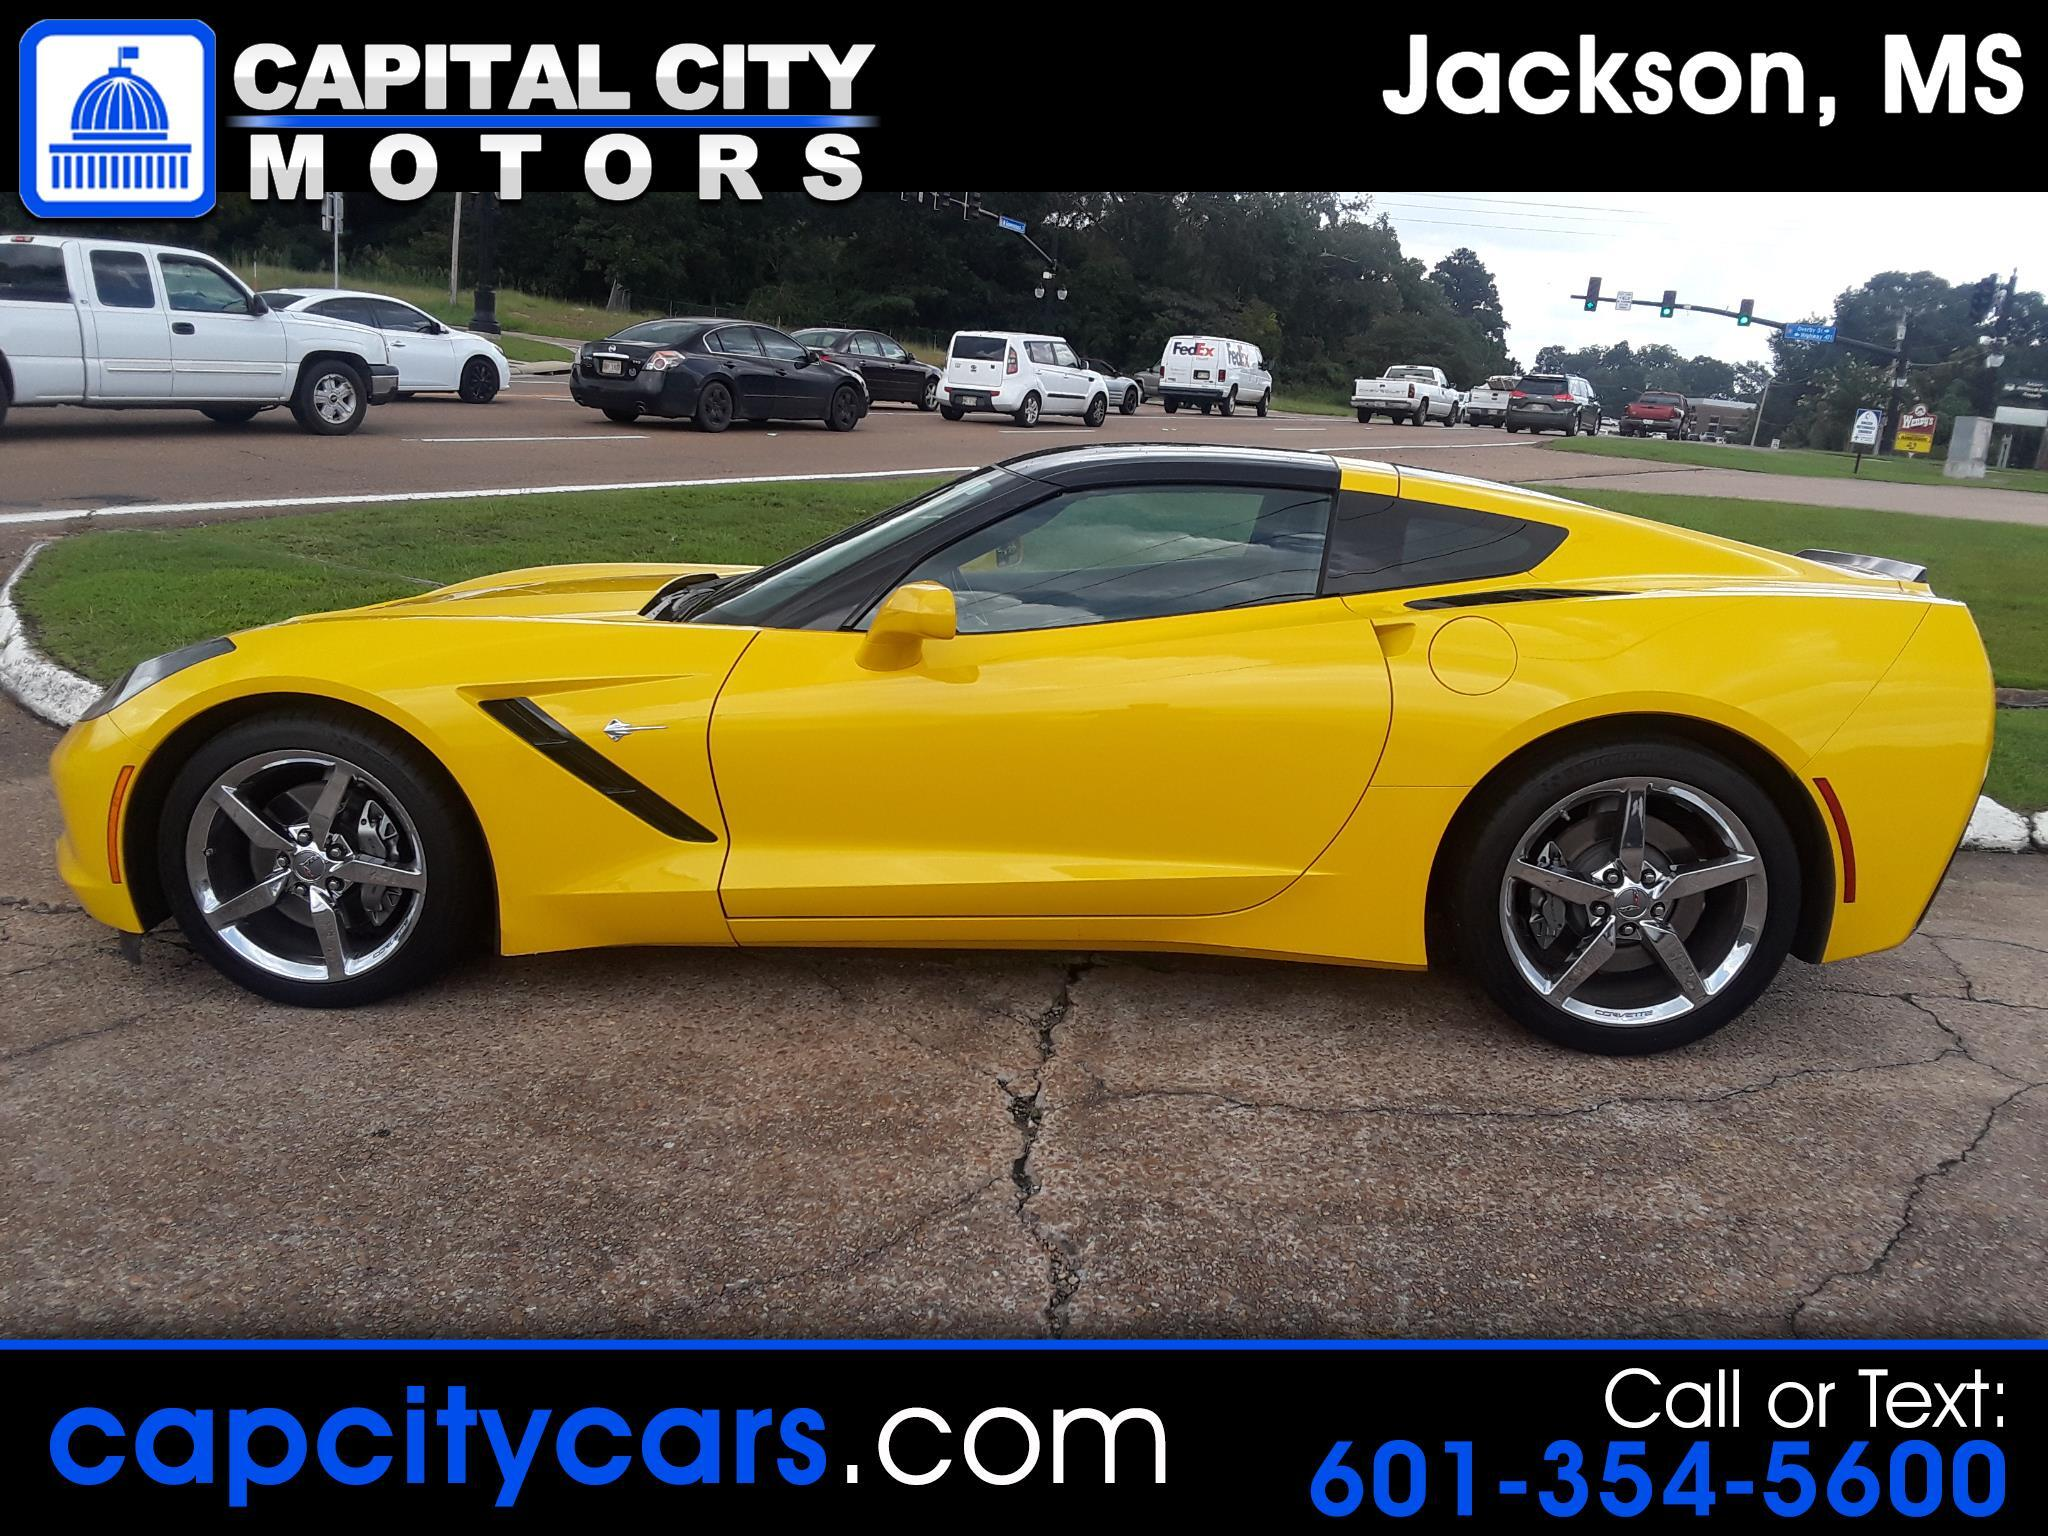 Used Cars for Sale Jackson MS 39201 Capital City Motors Jackson